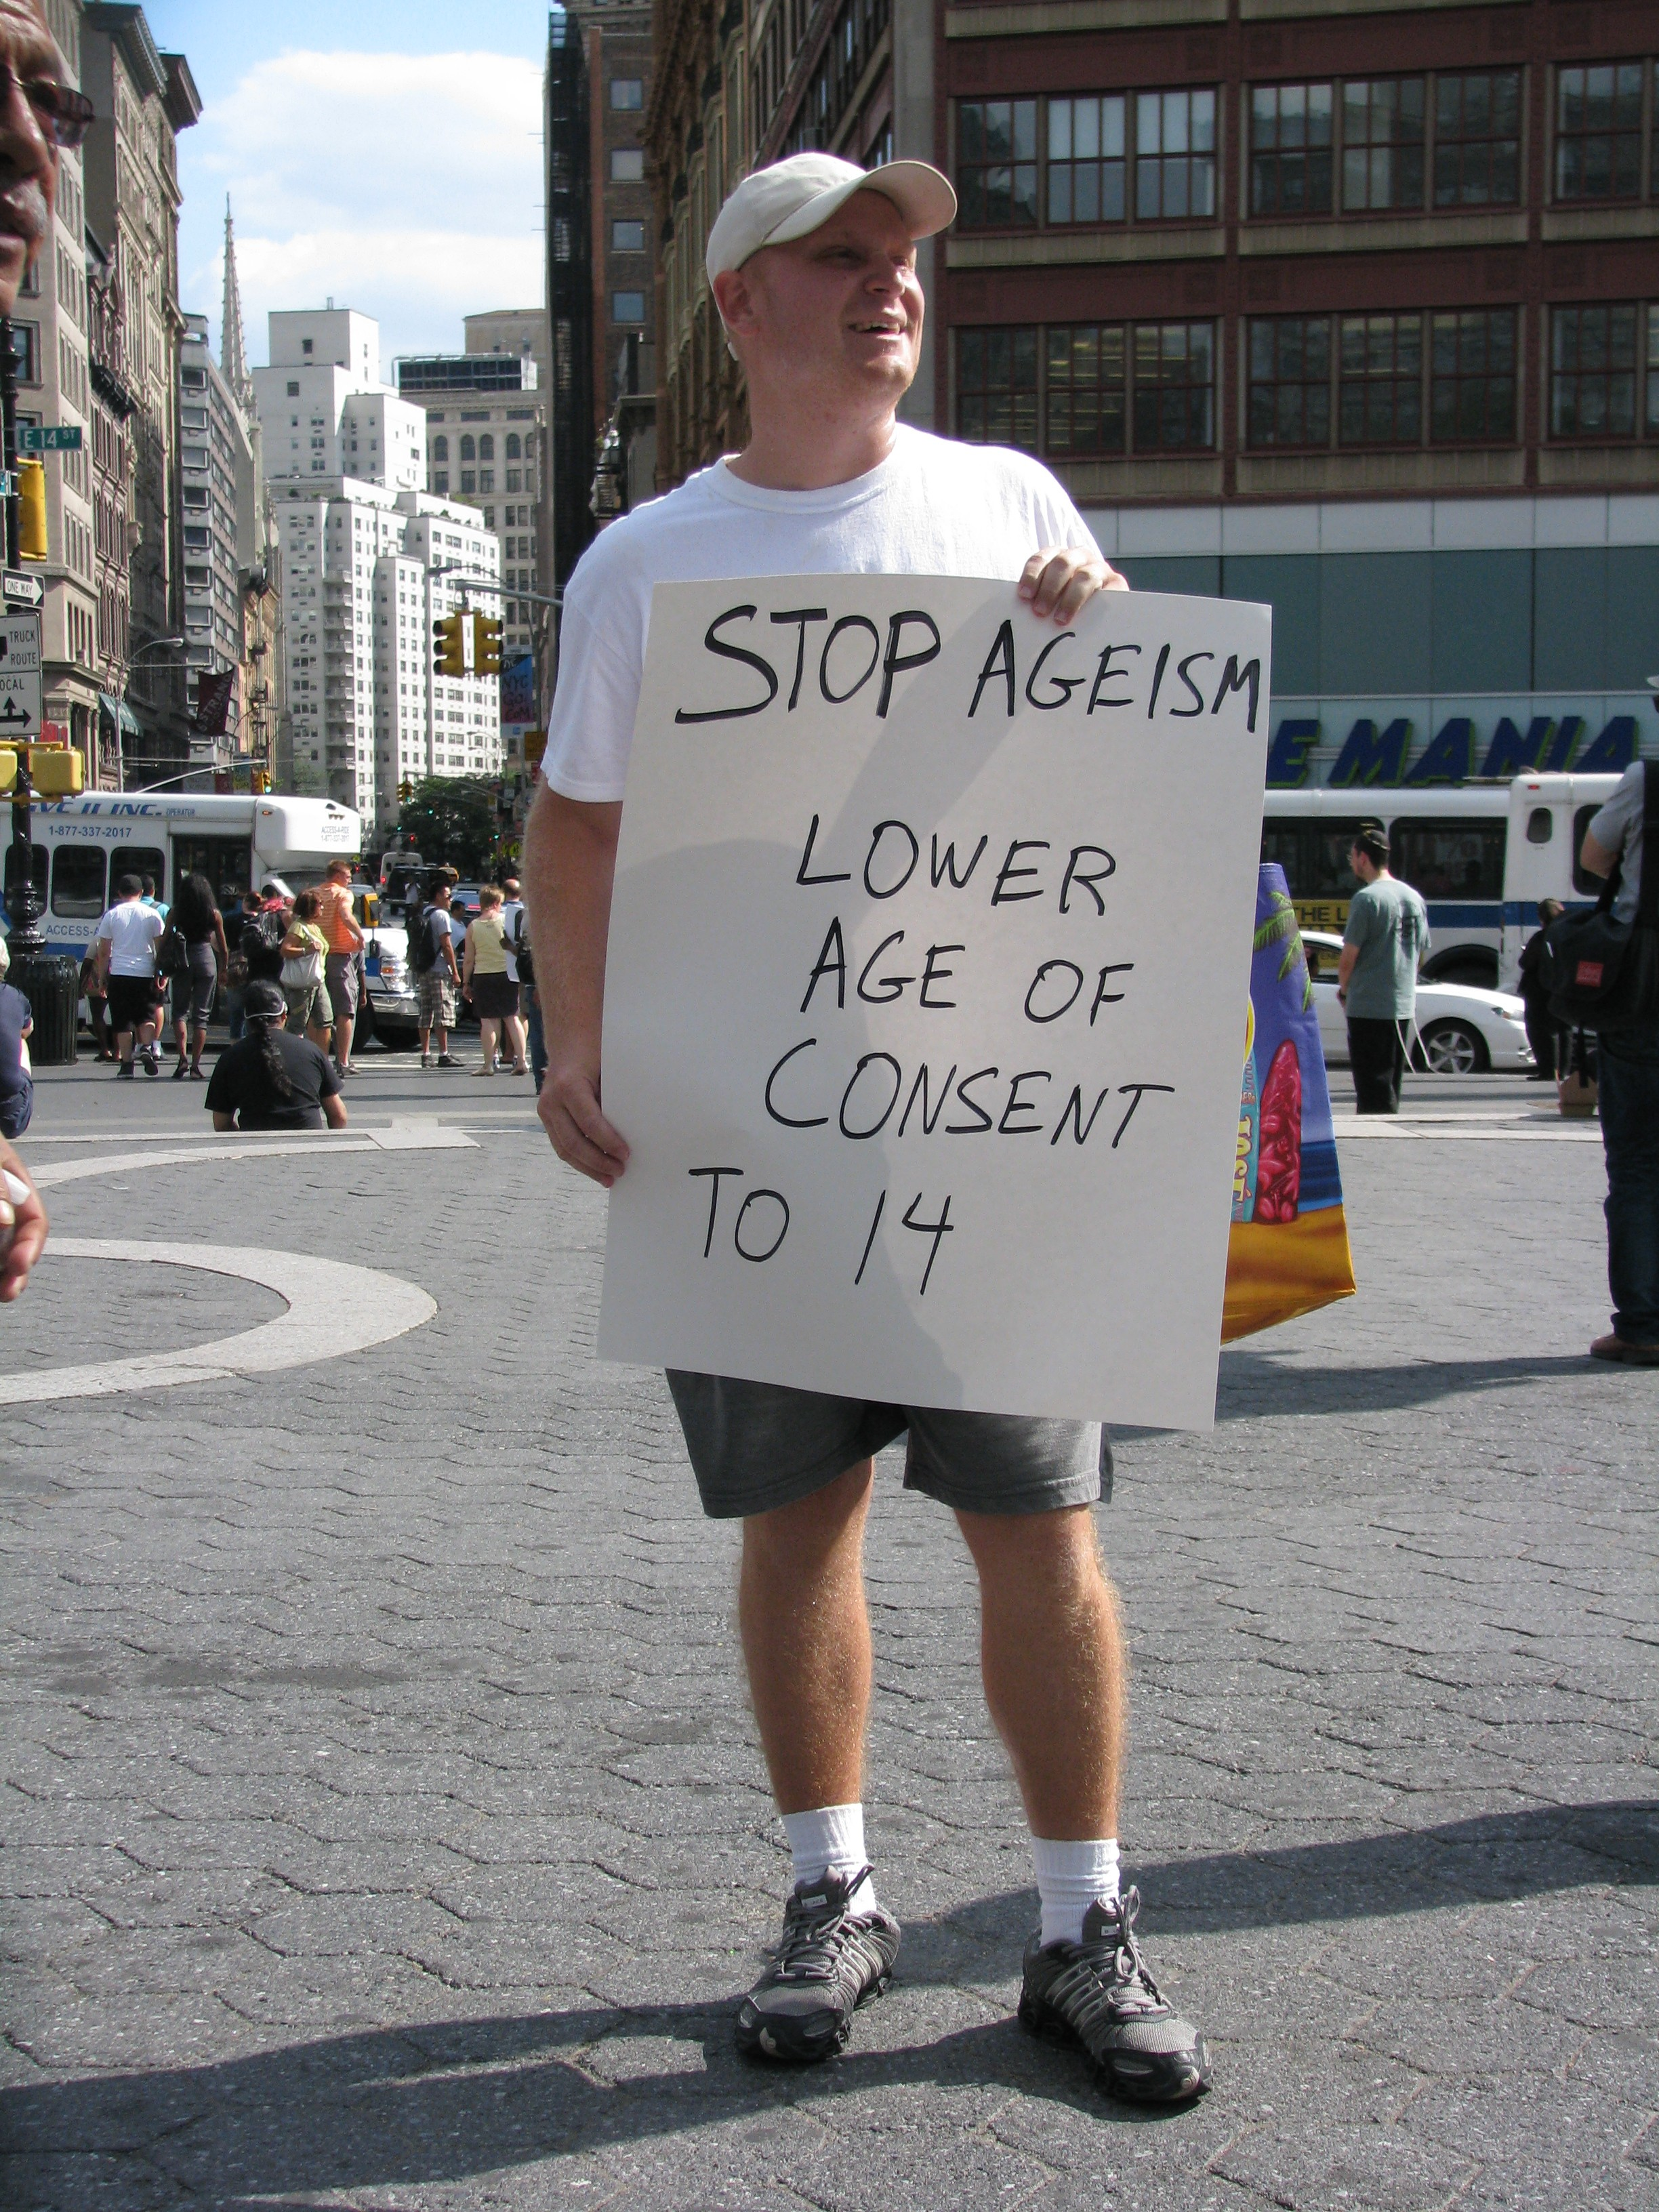 man with LOWER AGE OF CONSENT sign